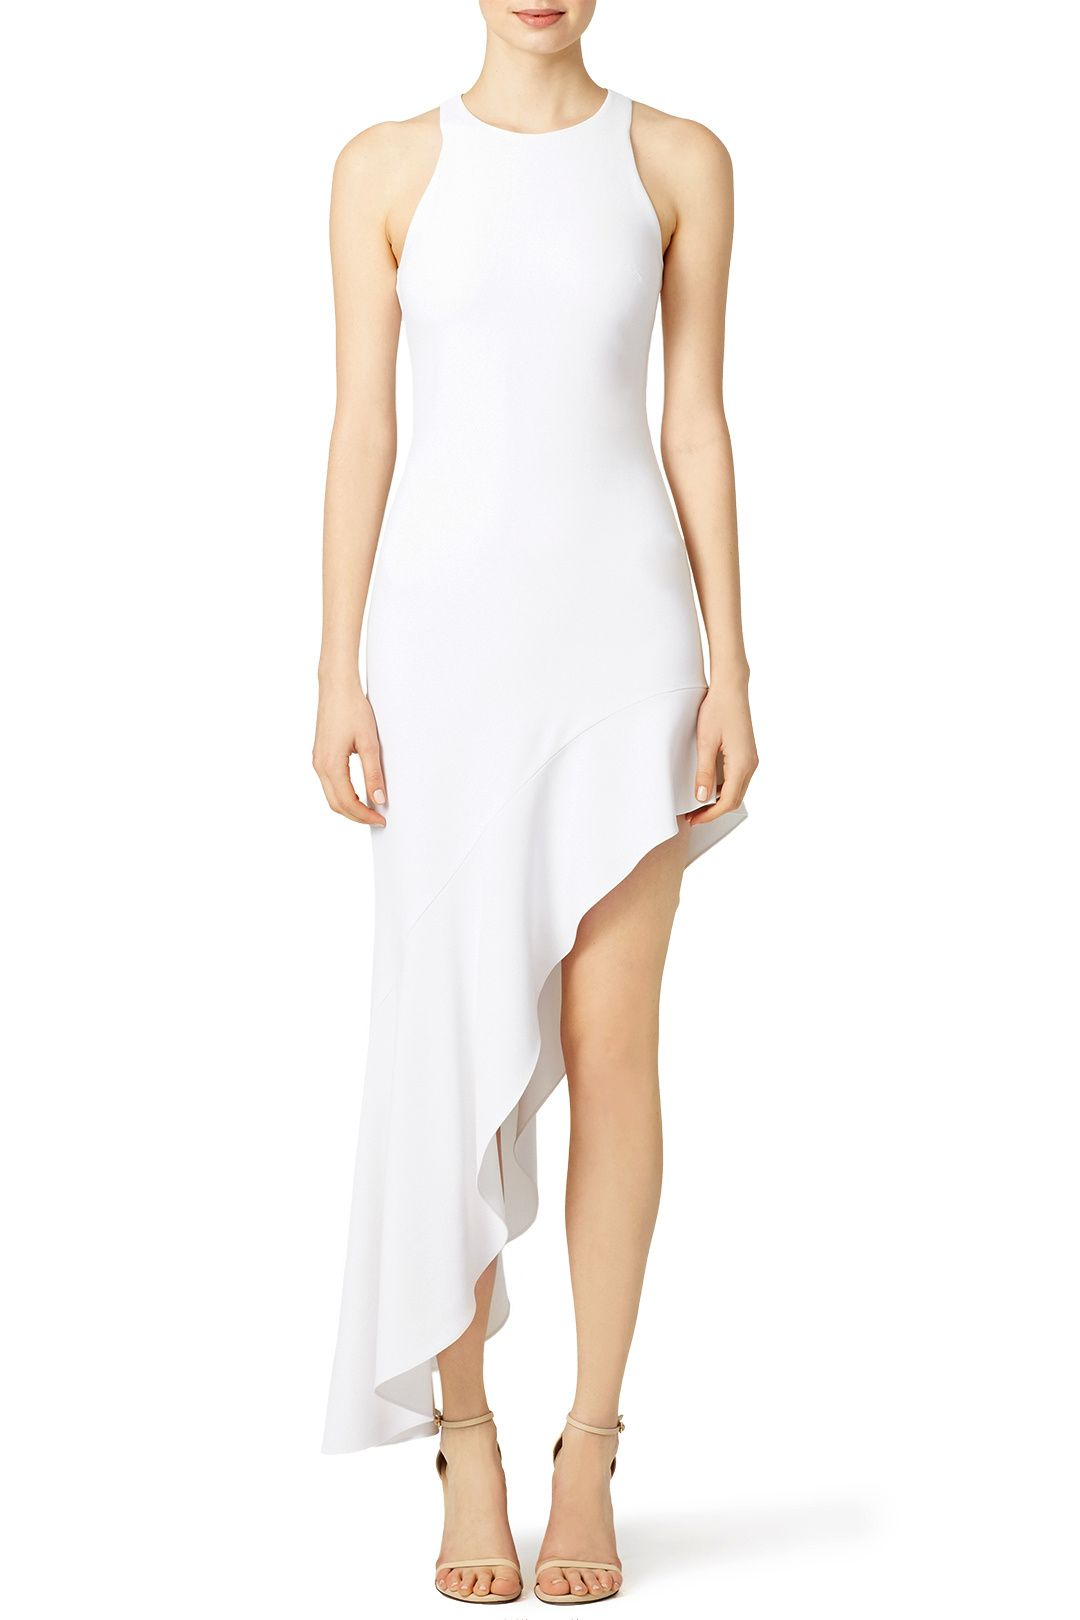 White Wisp Gown by Cushnie Et Ochs for   Rent the Runway